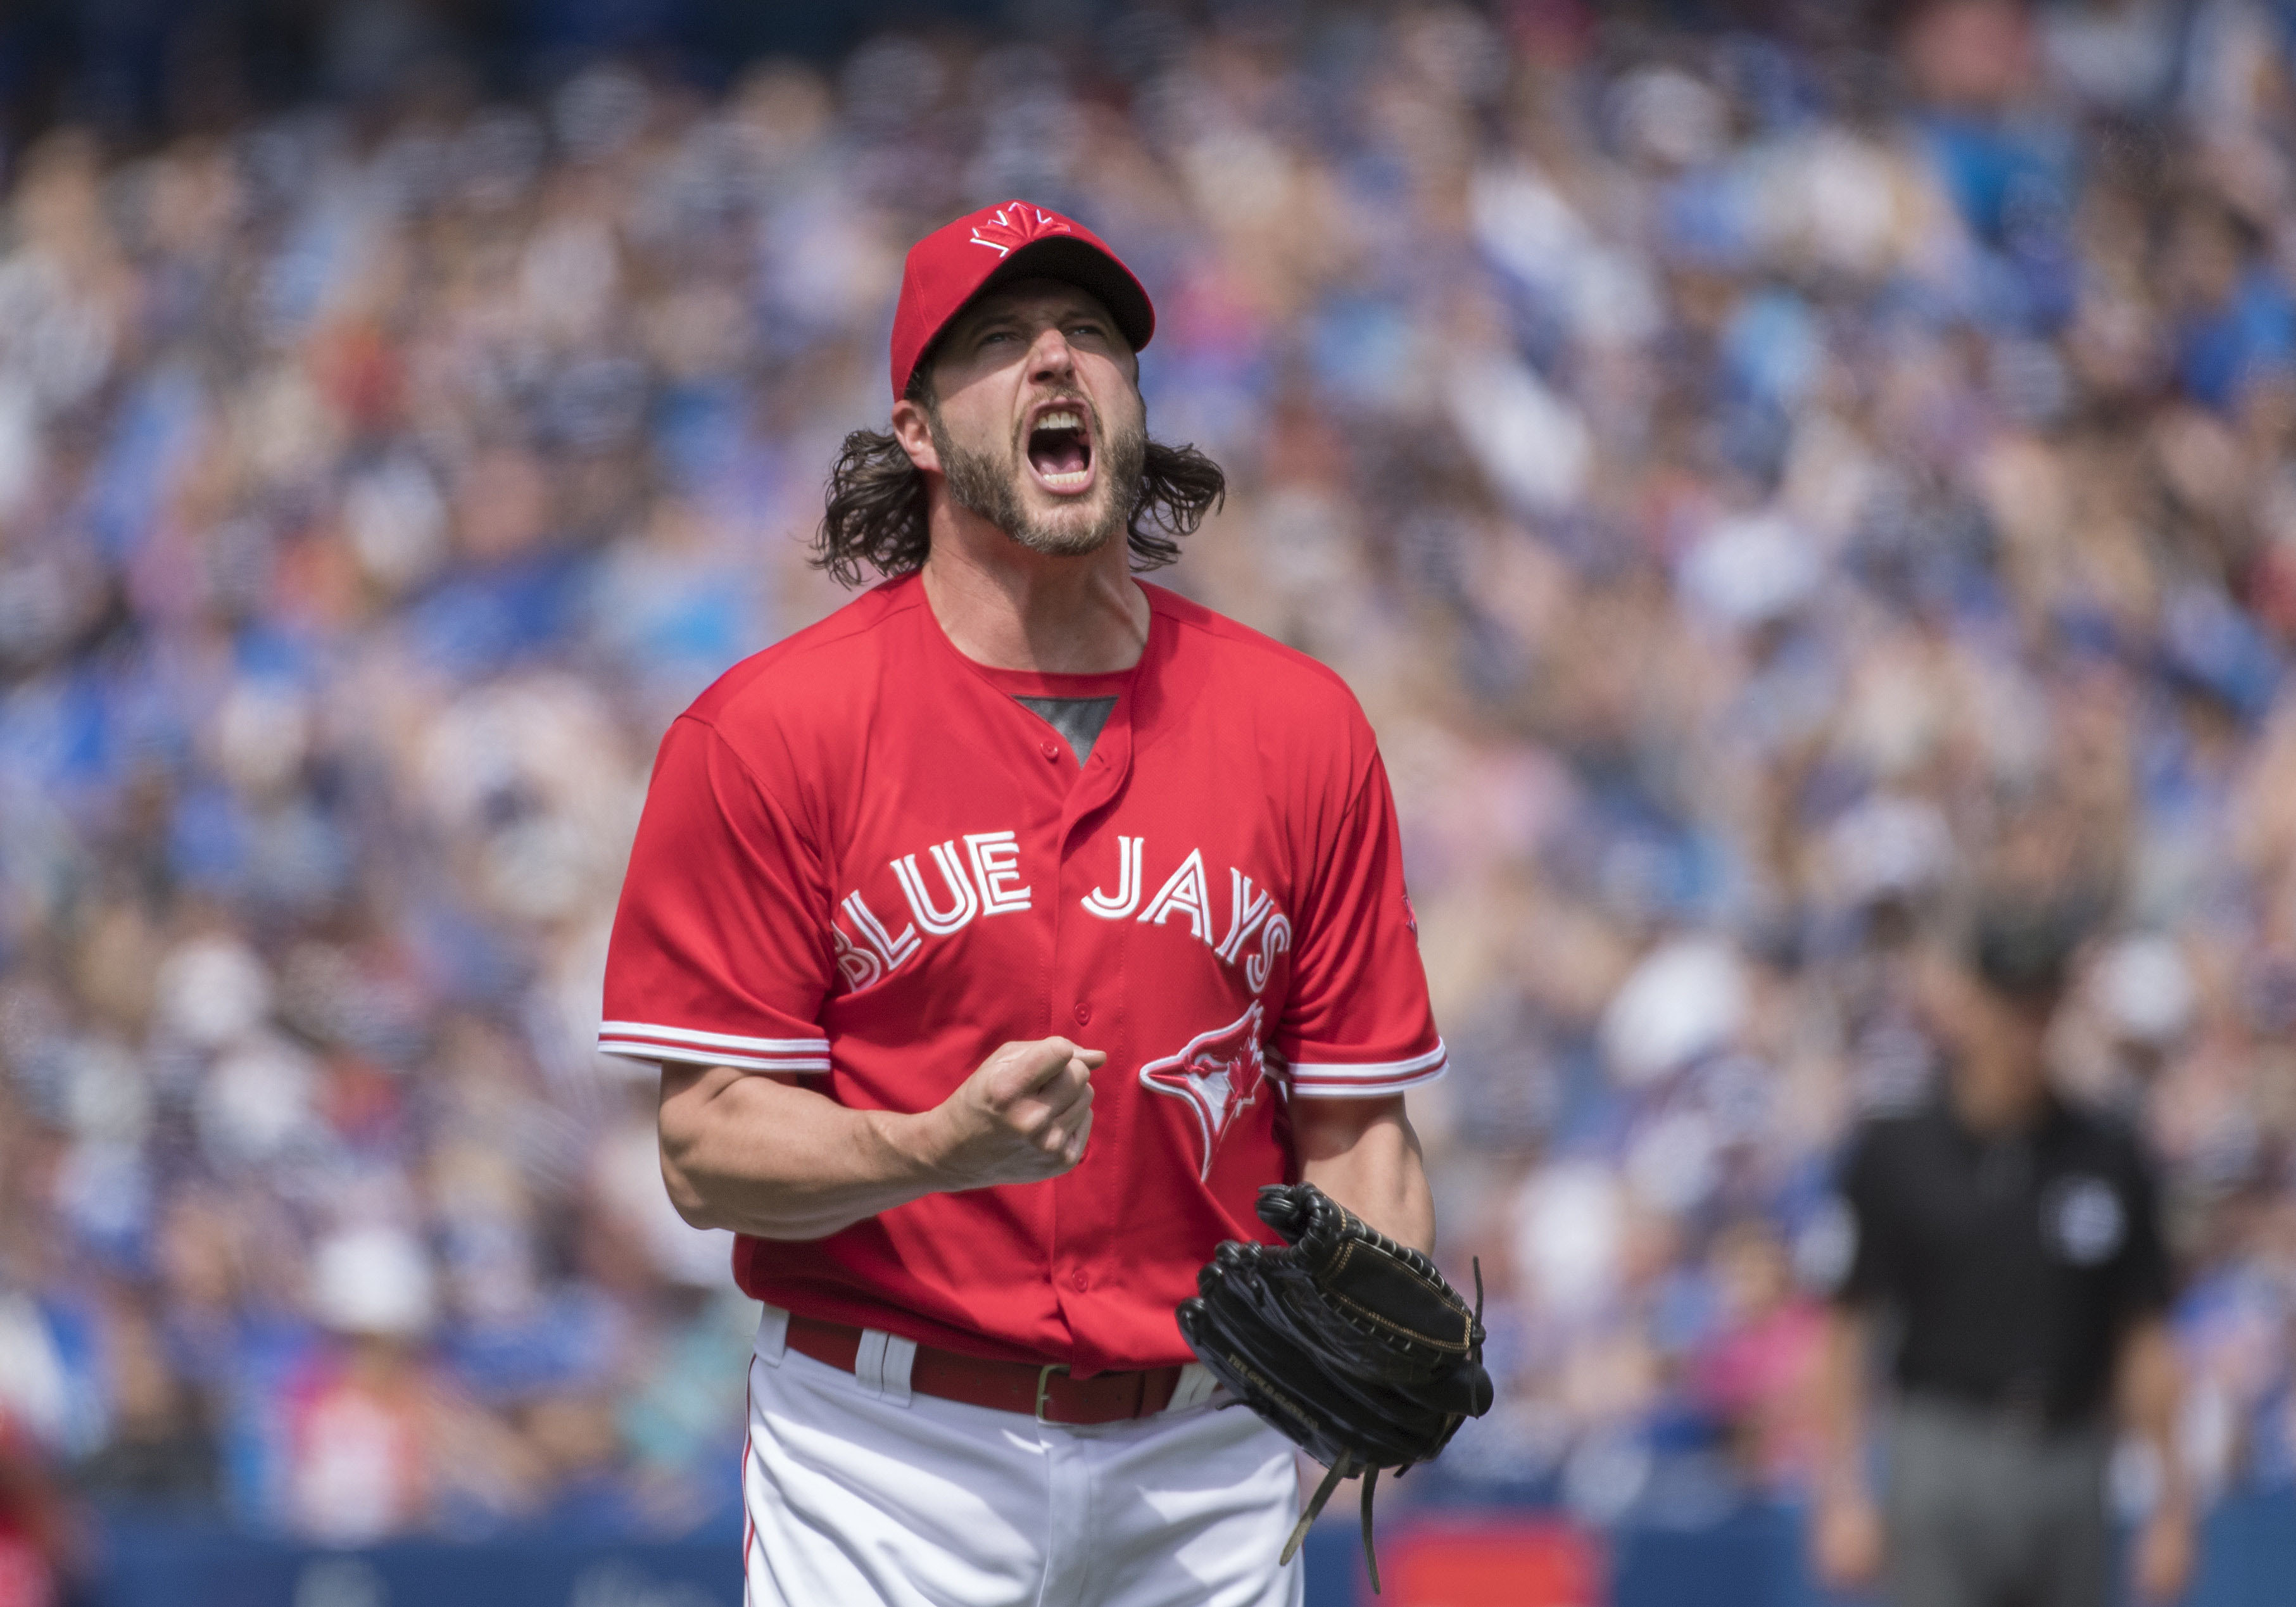 10077870-mlb-texas-rangers-at-toronto-blue-jays